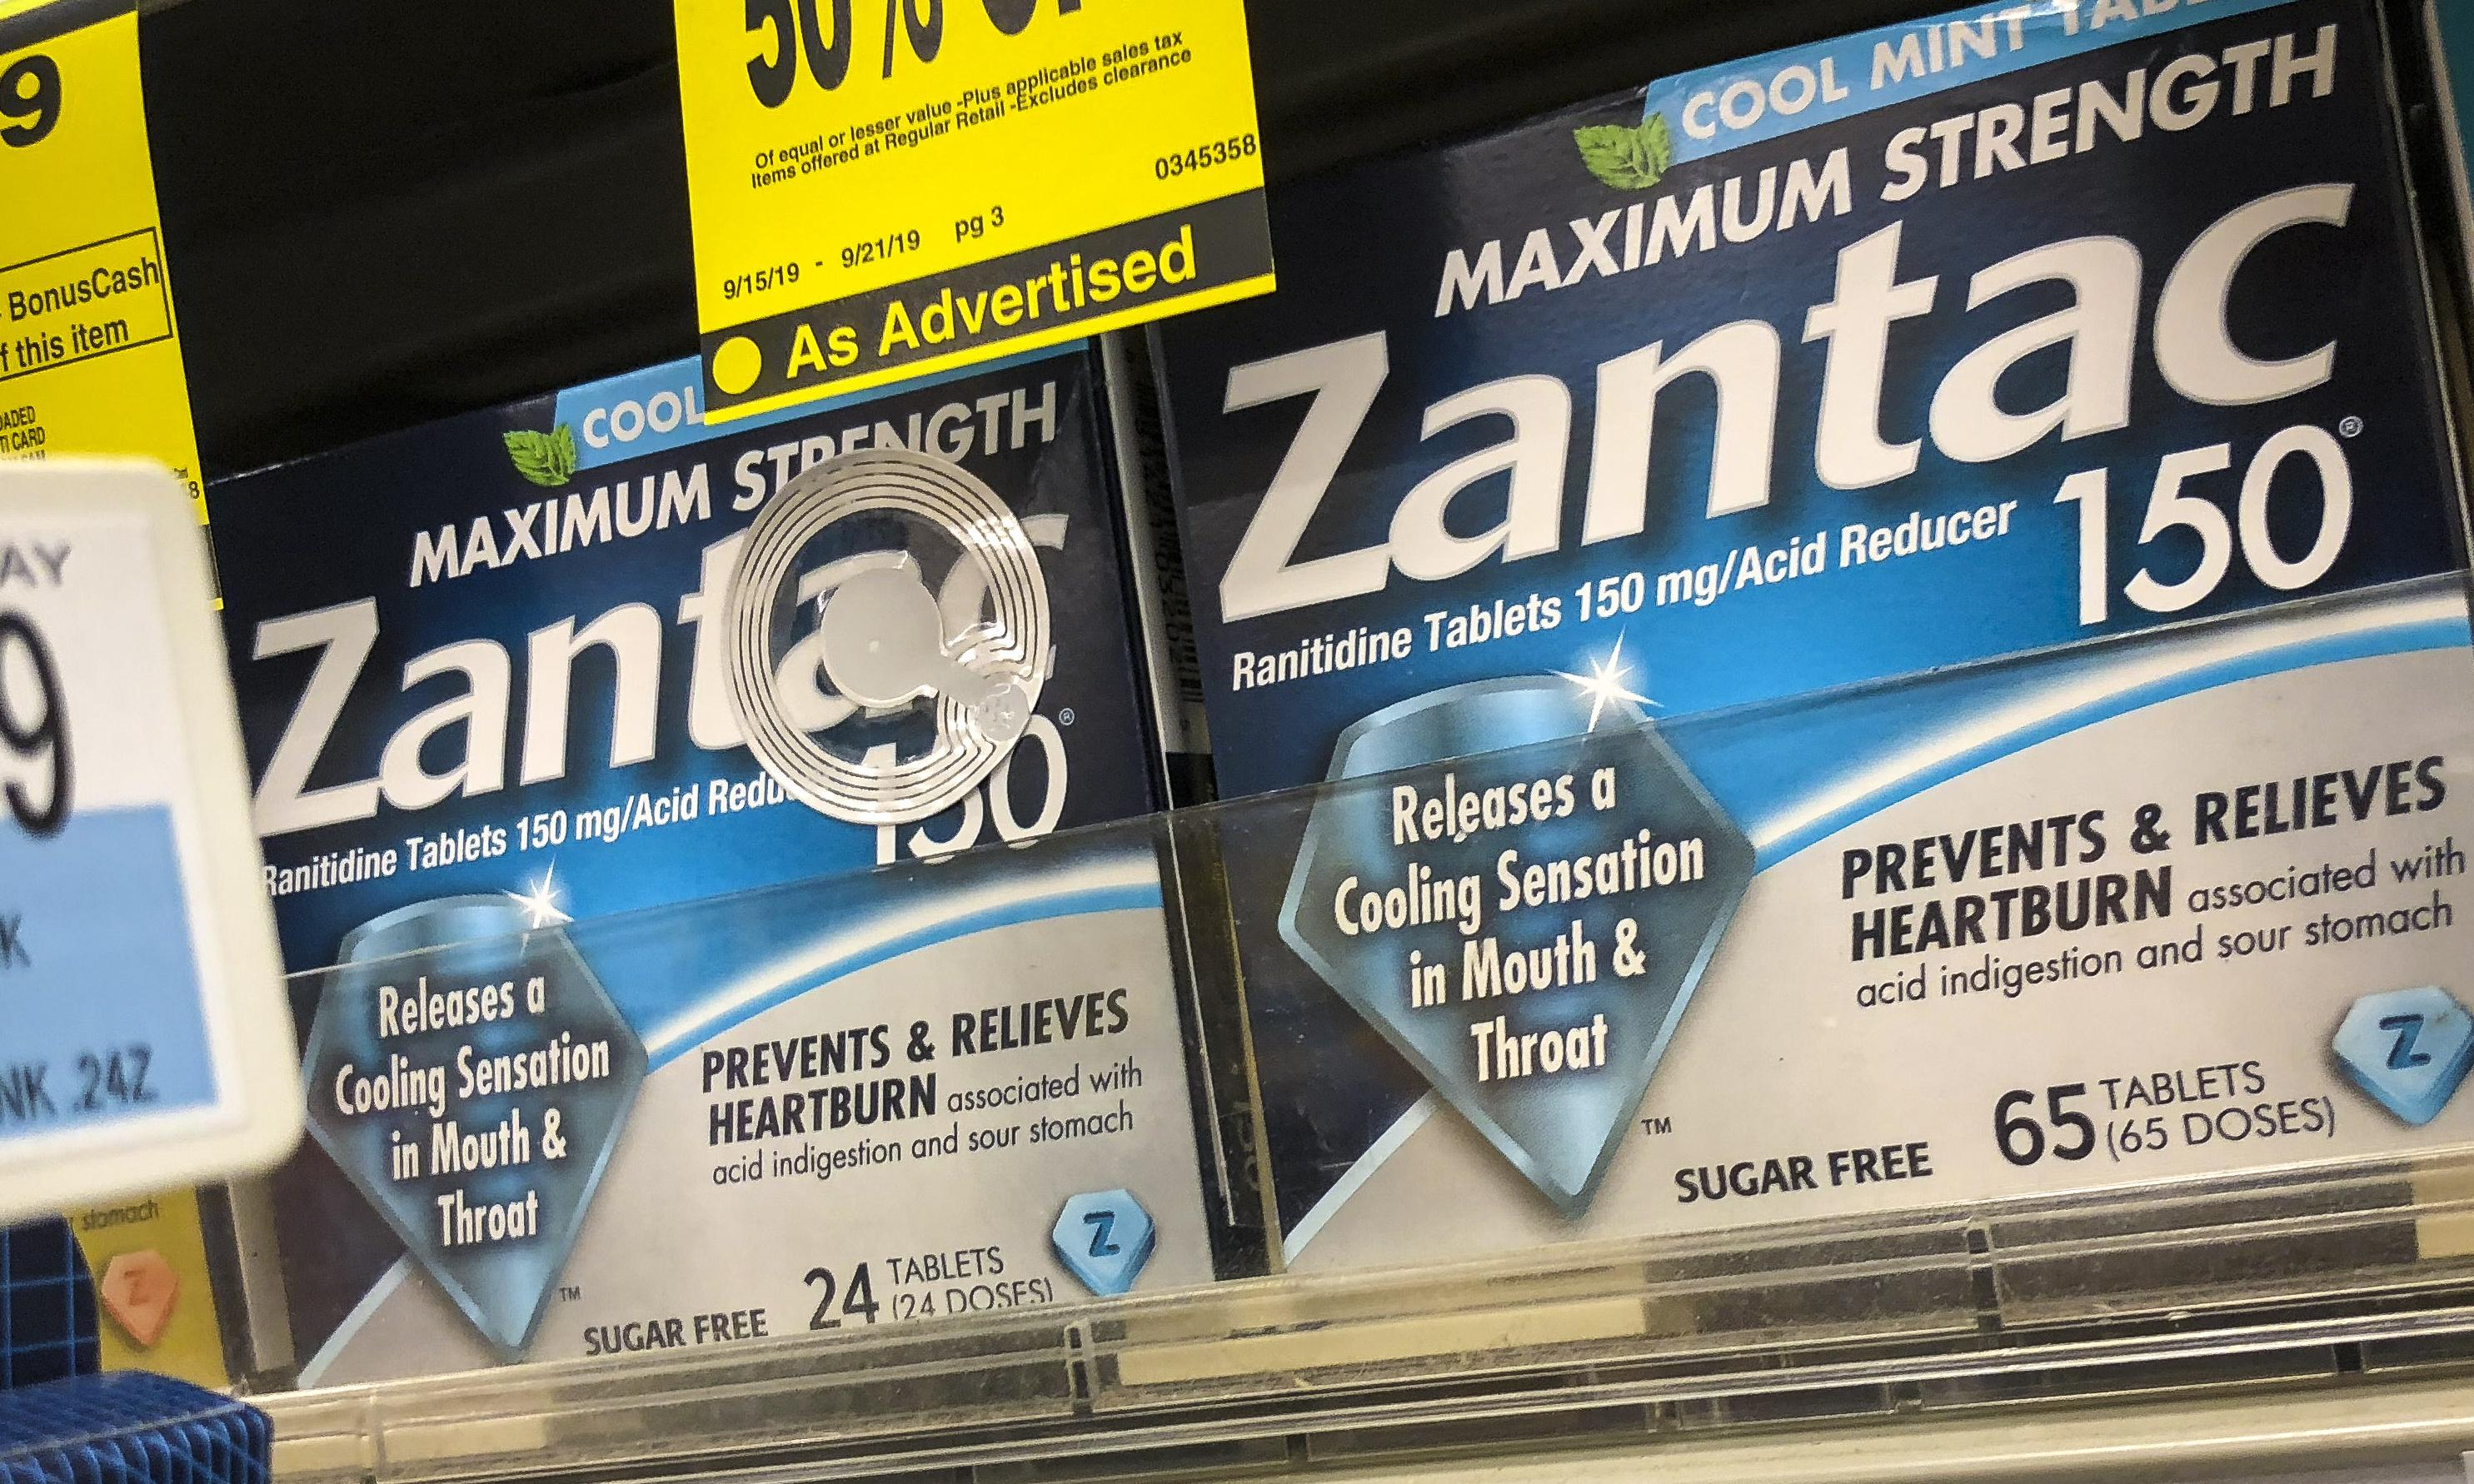 Zantac in global recall over 'unacceptable' levels of potential carcinogen